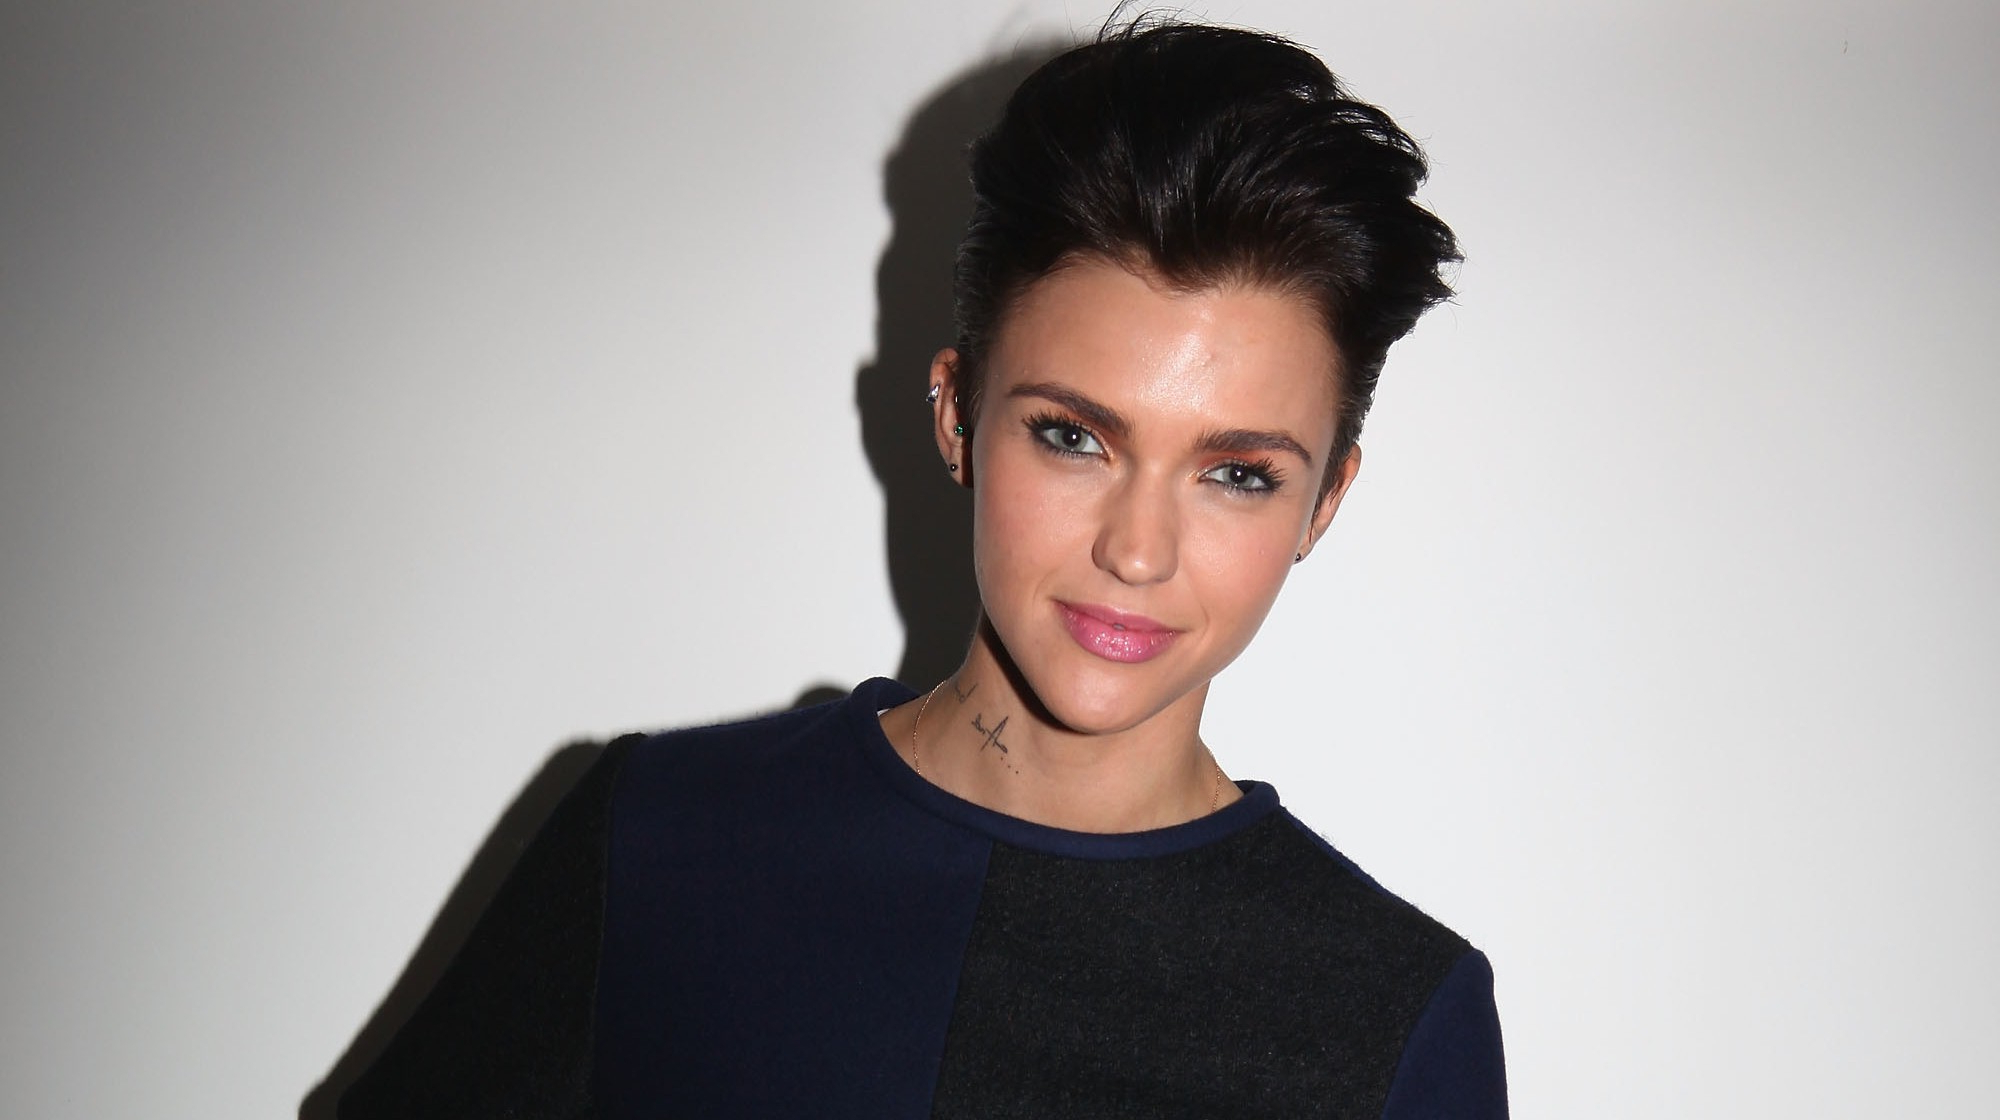 Ruby Rose In Short Hair Style Pics | Hd Wallpapers With Ruby Rose Short Hairstyles (View 16 of 25)